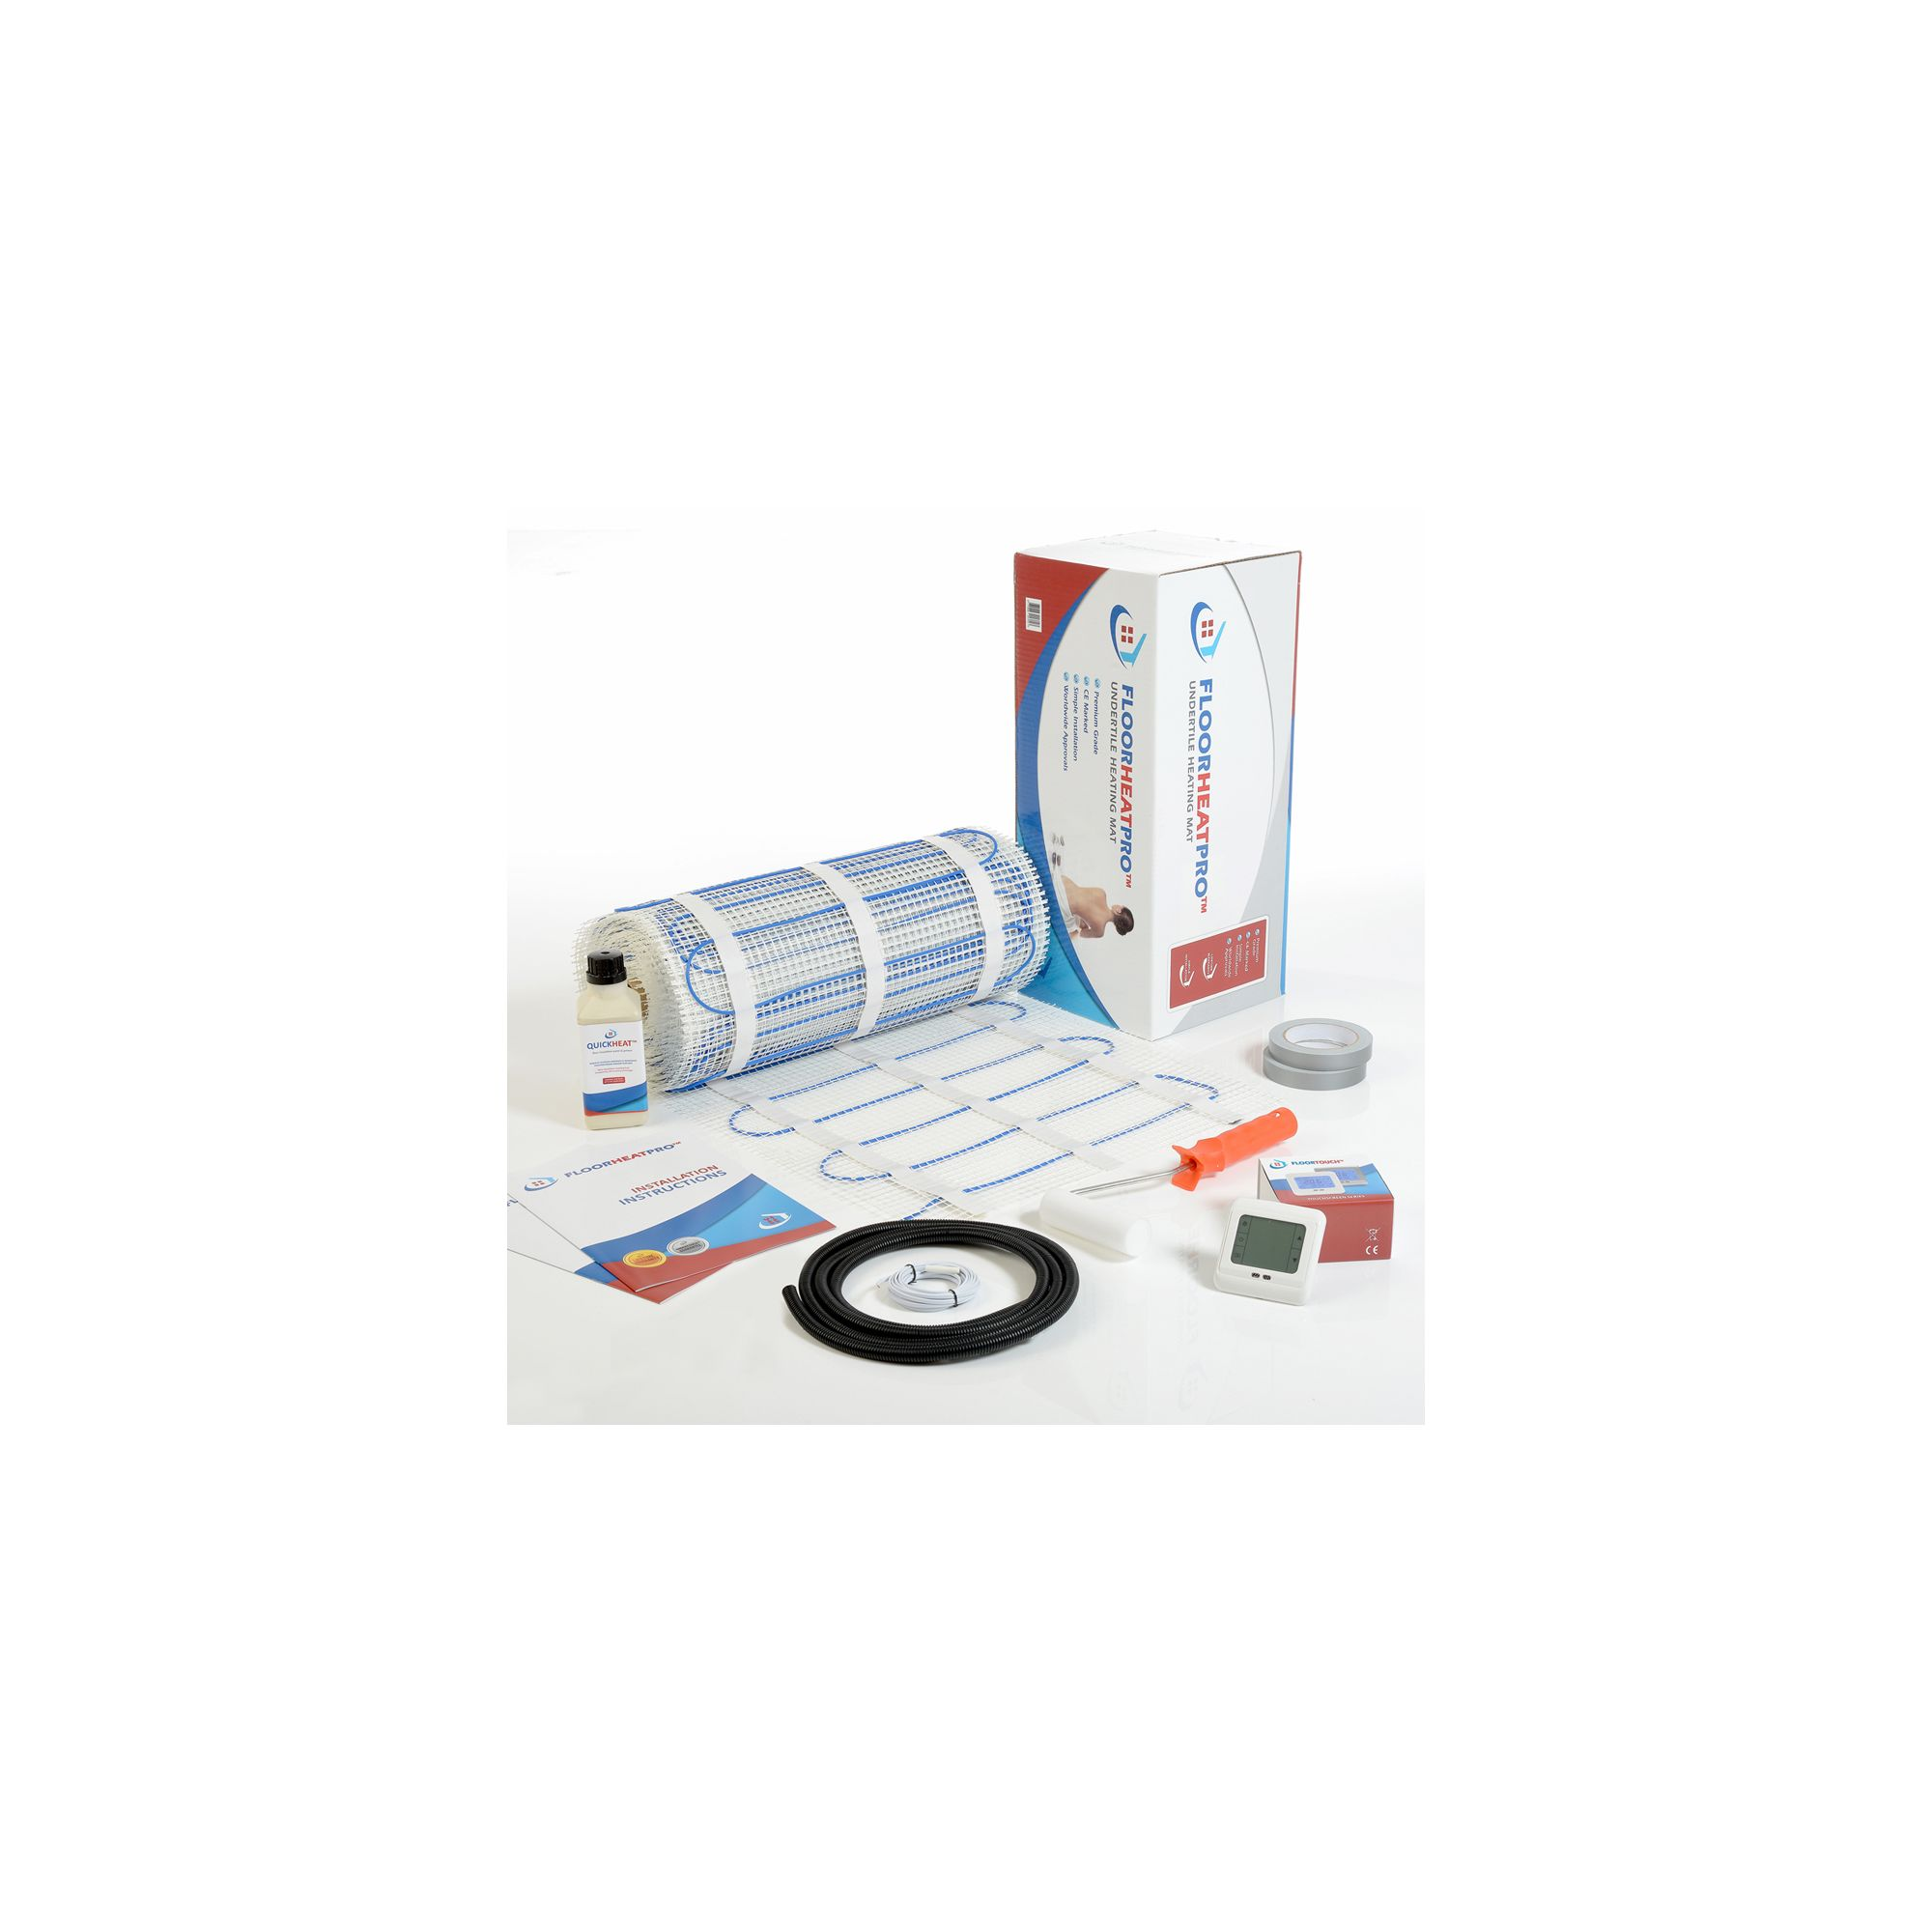 21.0m2 - Underfloor Electric Heating Kit 150w/m2 - Tiles at Tesco Direct